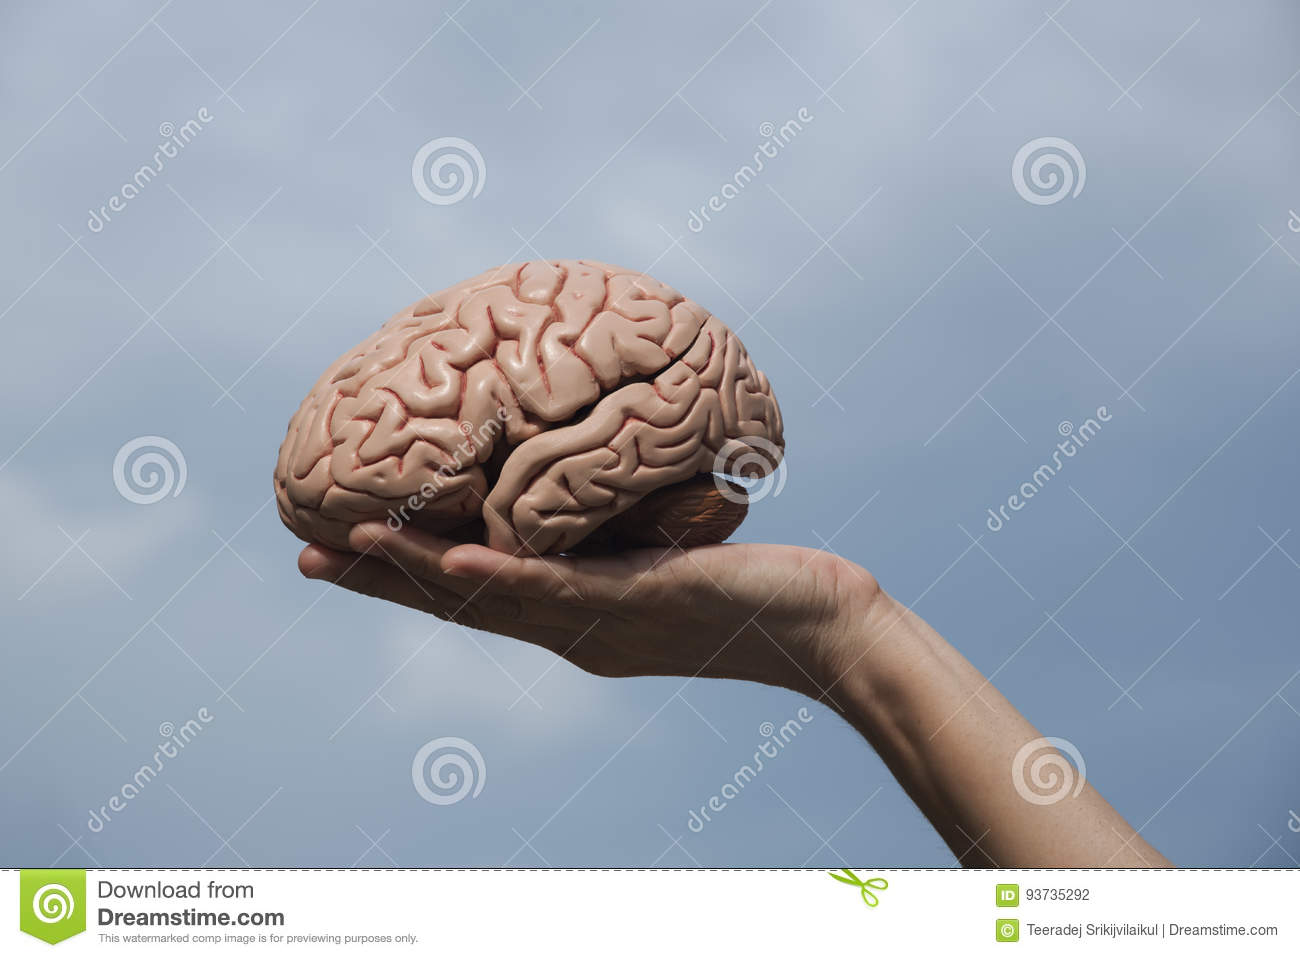 Artificial Human Brain Model And Hand Holding Stock Photo - Image of ...